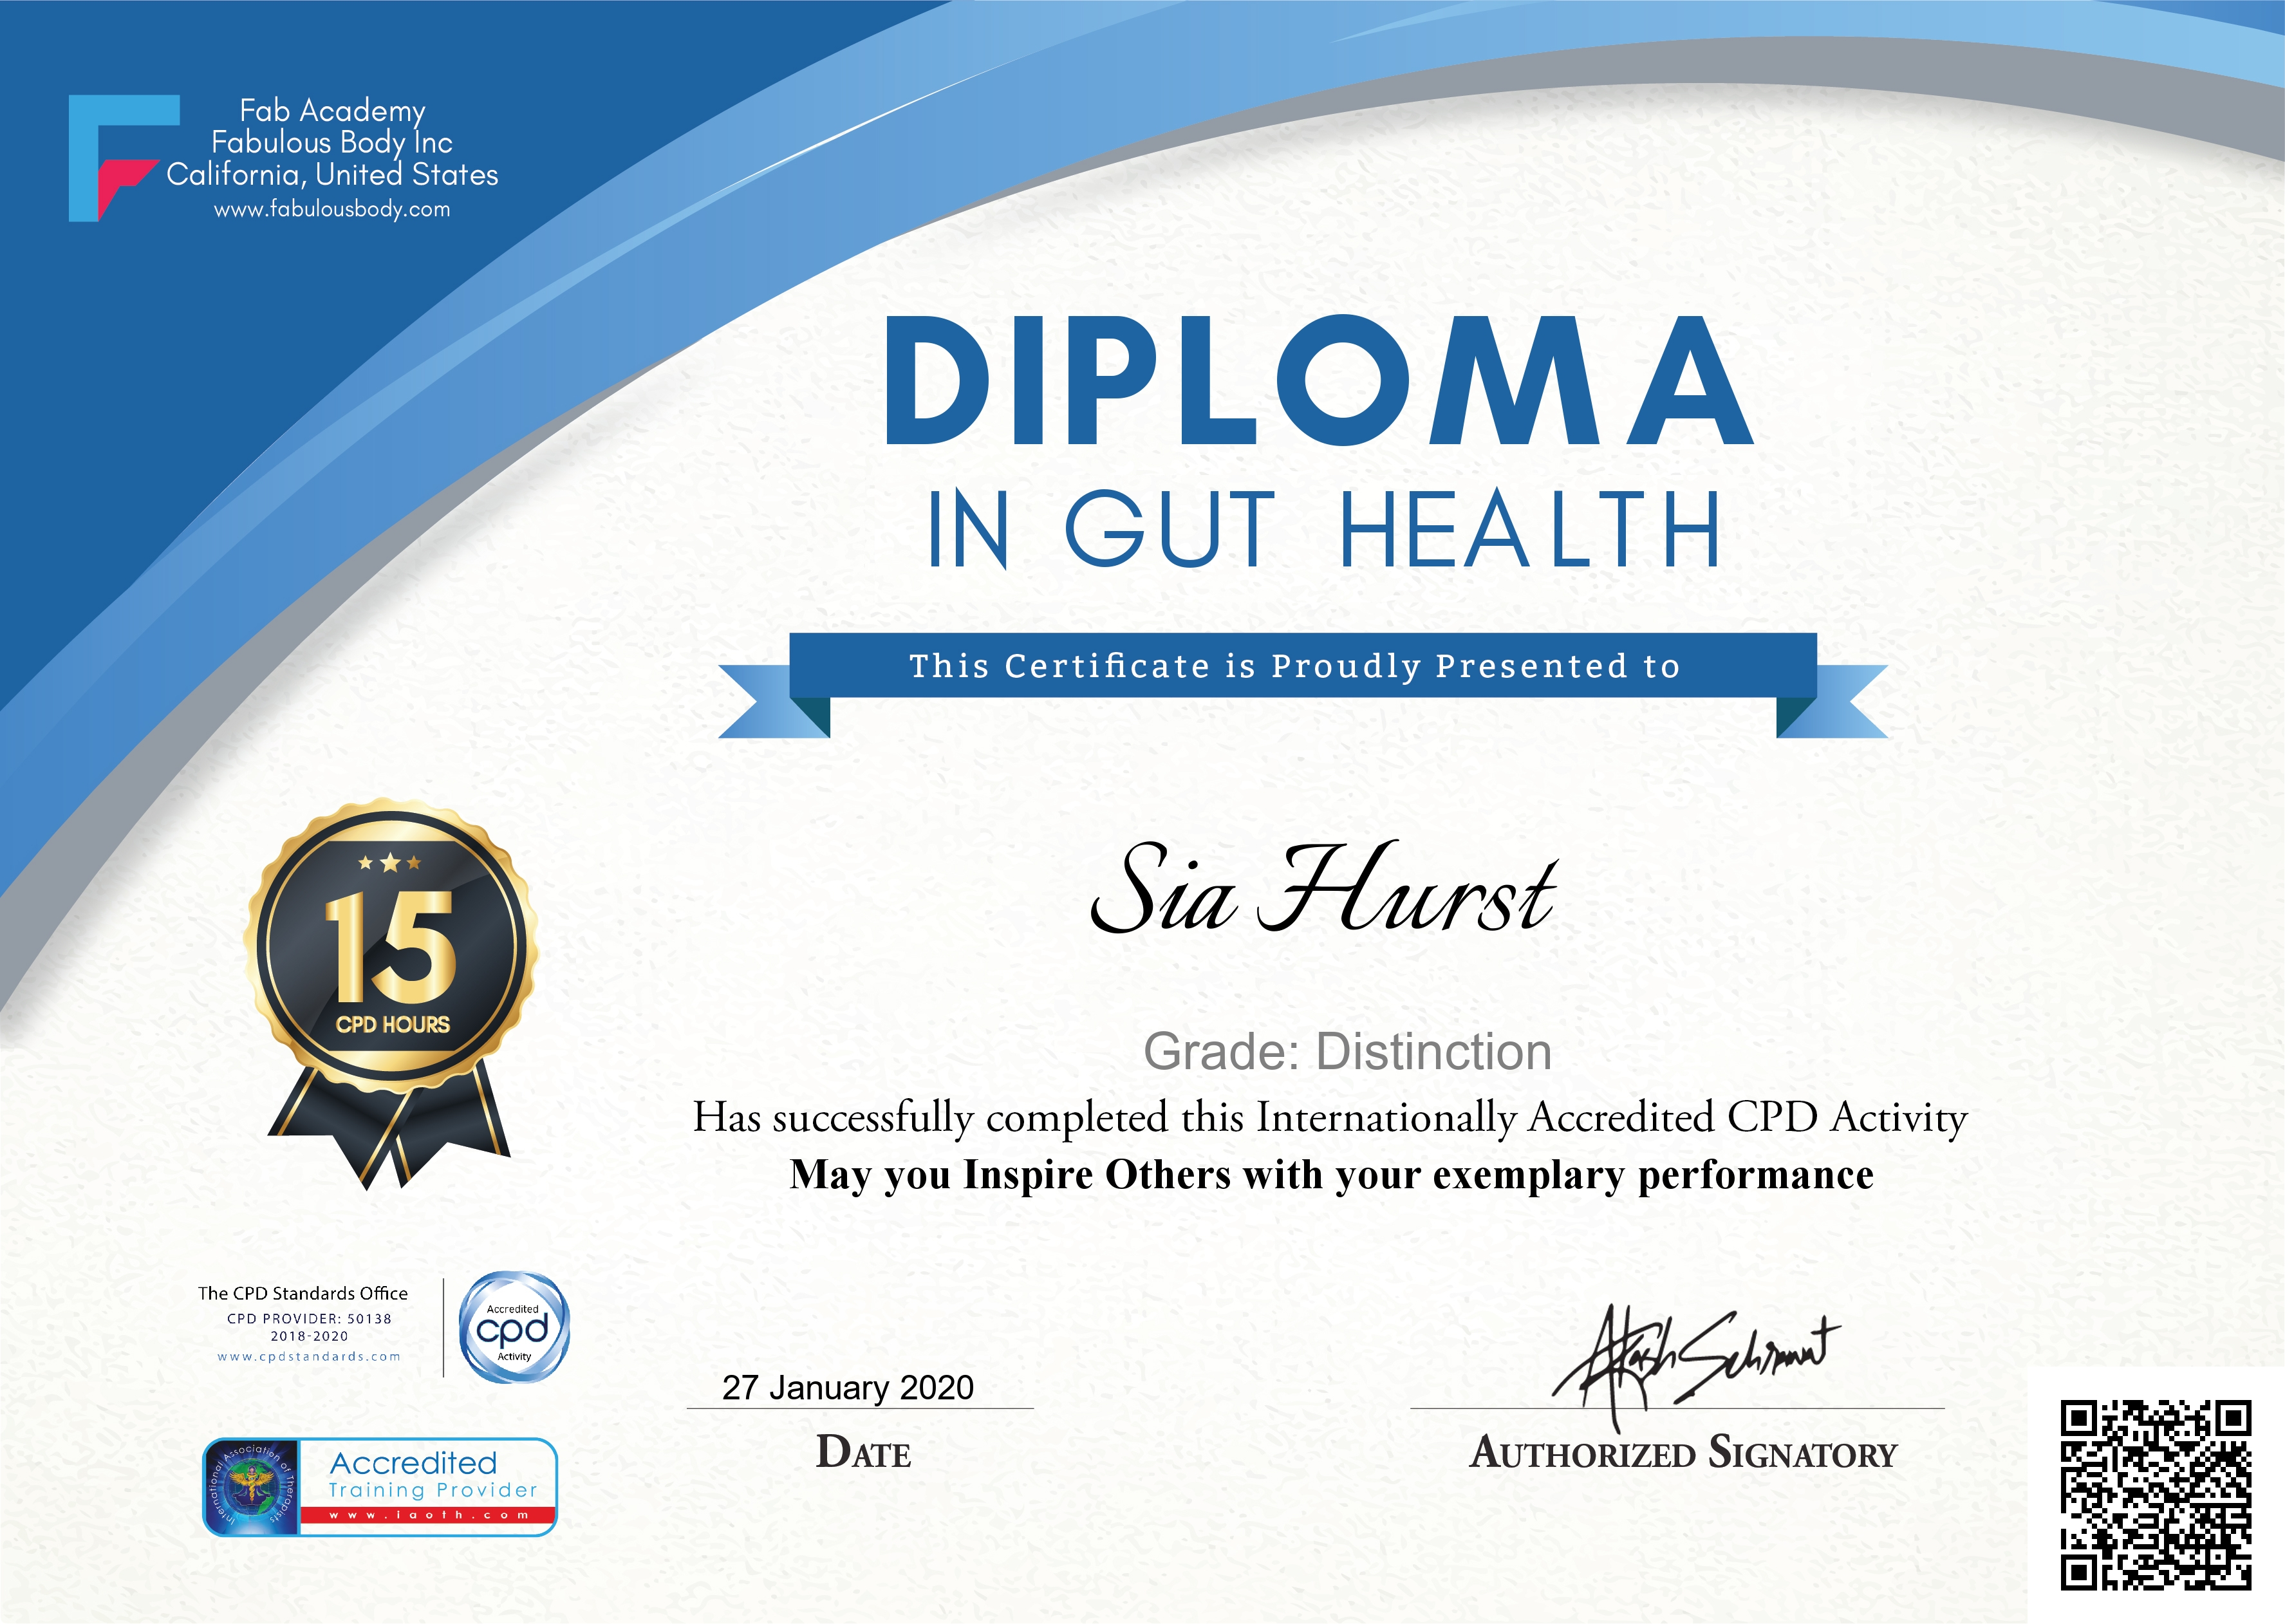 Certificate with Distinction.jpg